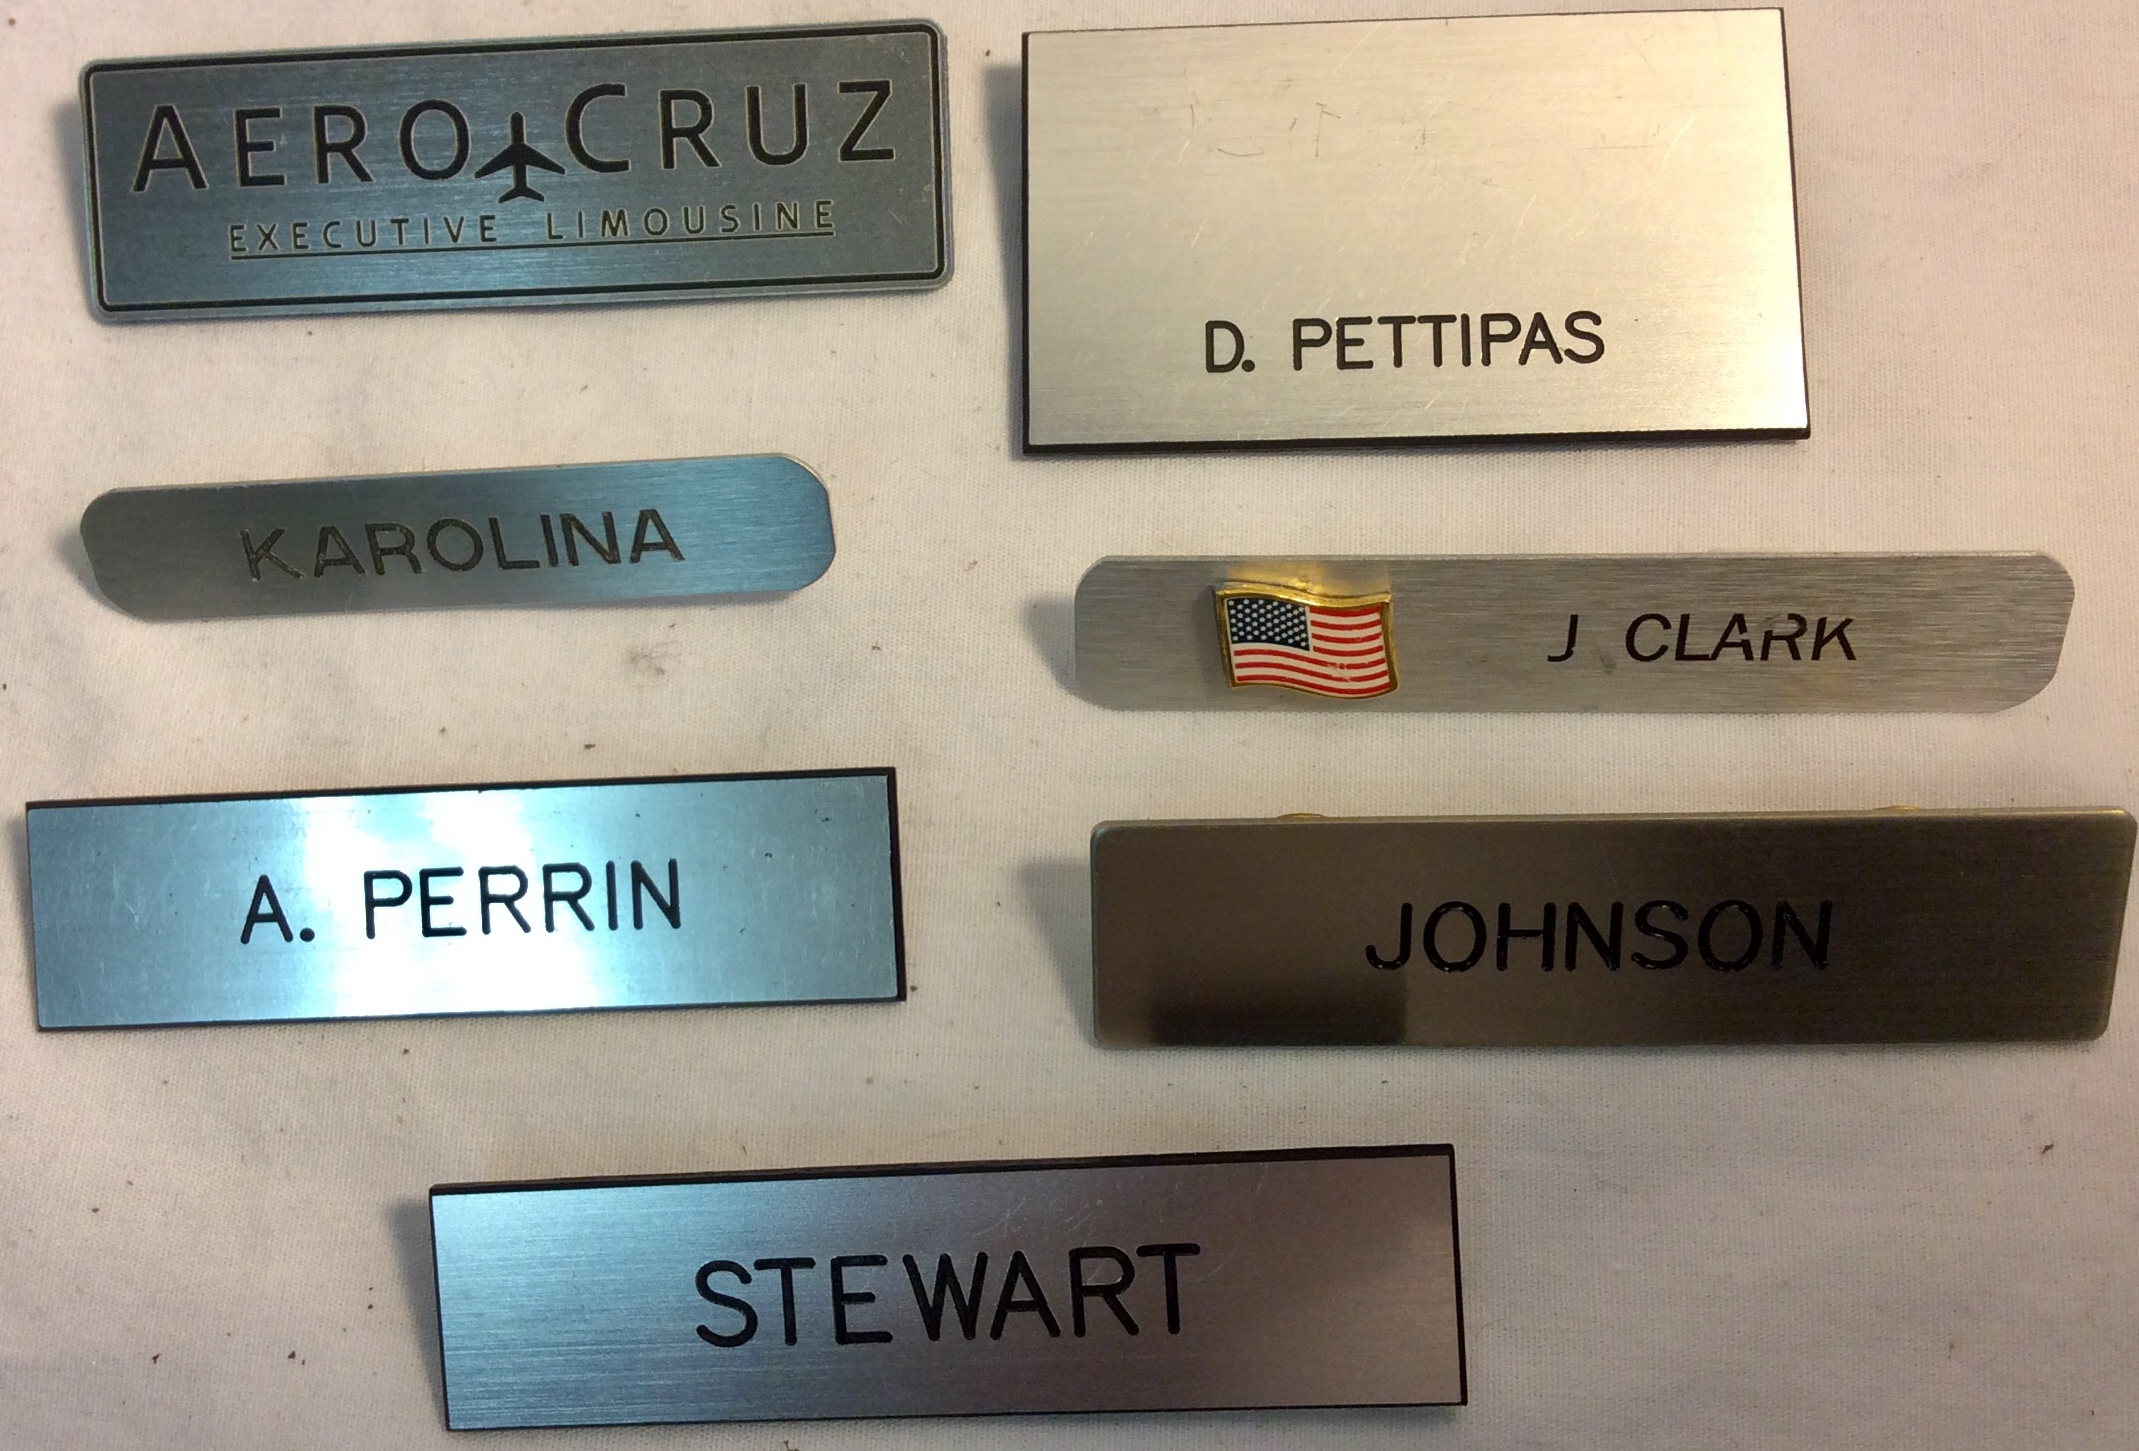 Assorted name tags with black lettering on silver